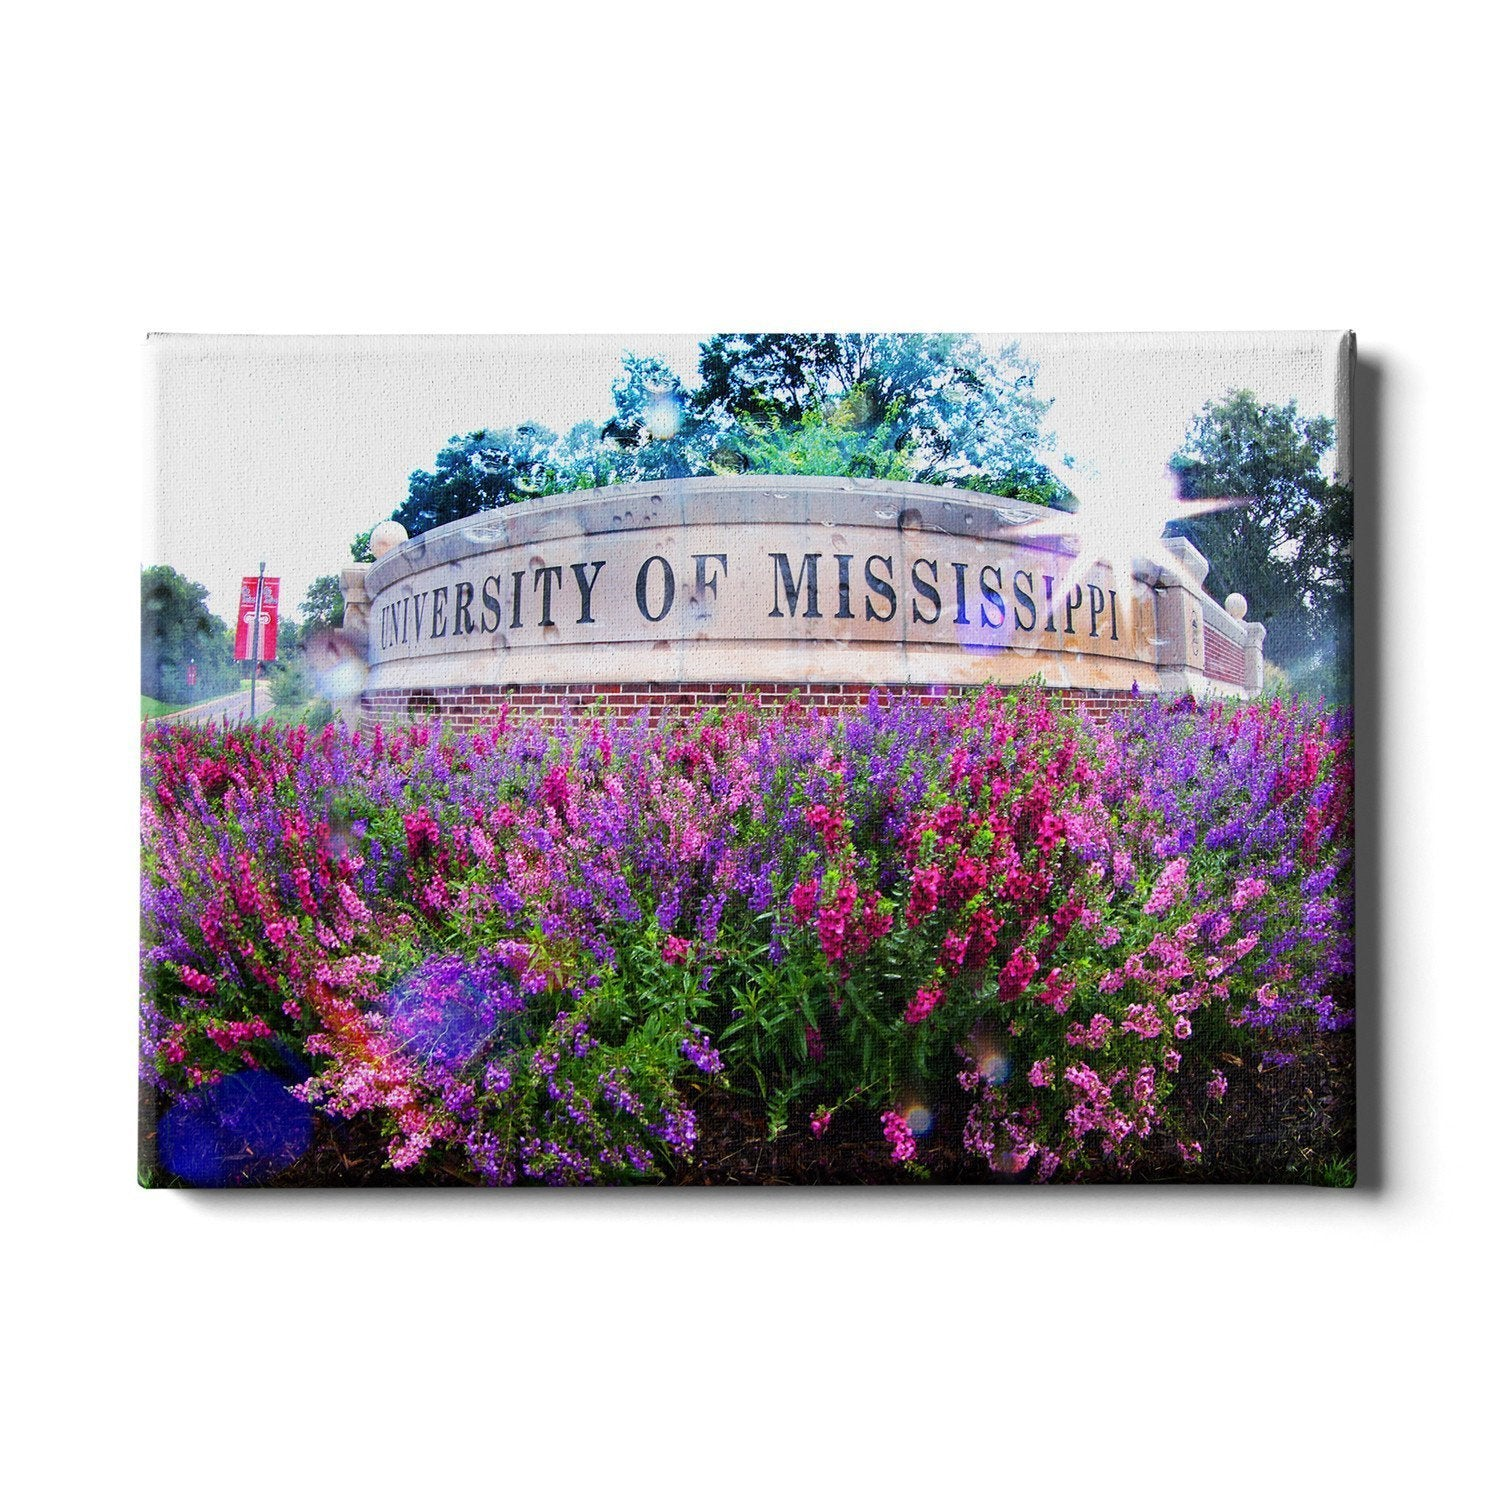 Ole Miss Rebels - University of Mississippi - College Wall Art #Canvas